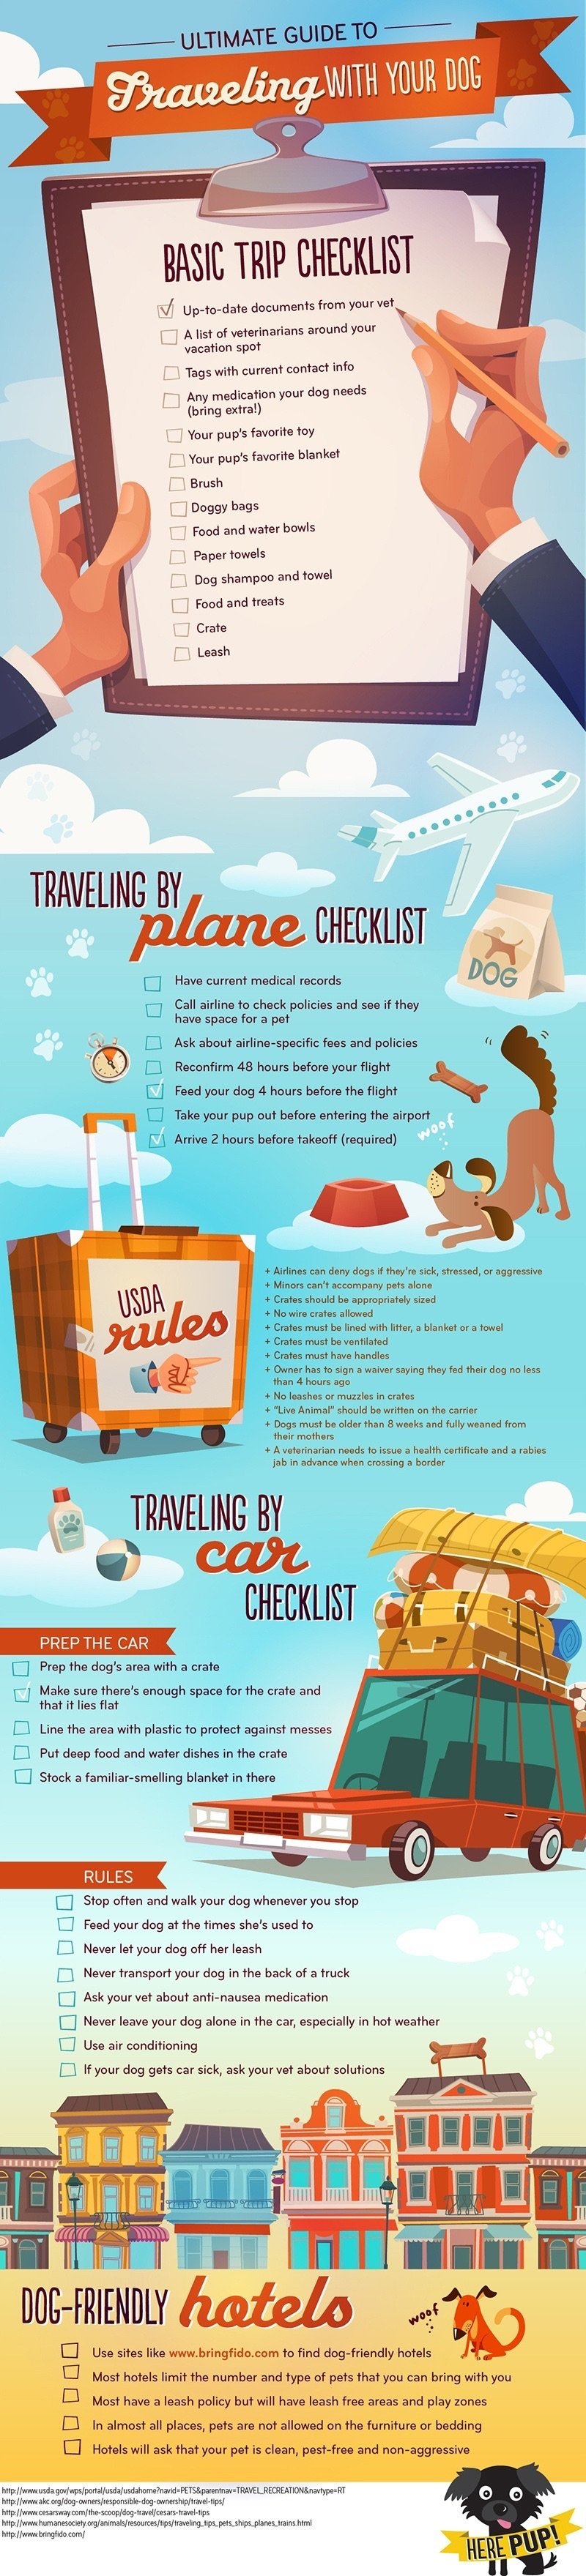 How to Travel with your Dog Infographic by Perrin Carrell